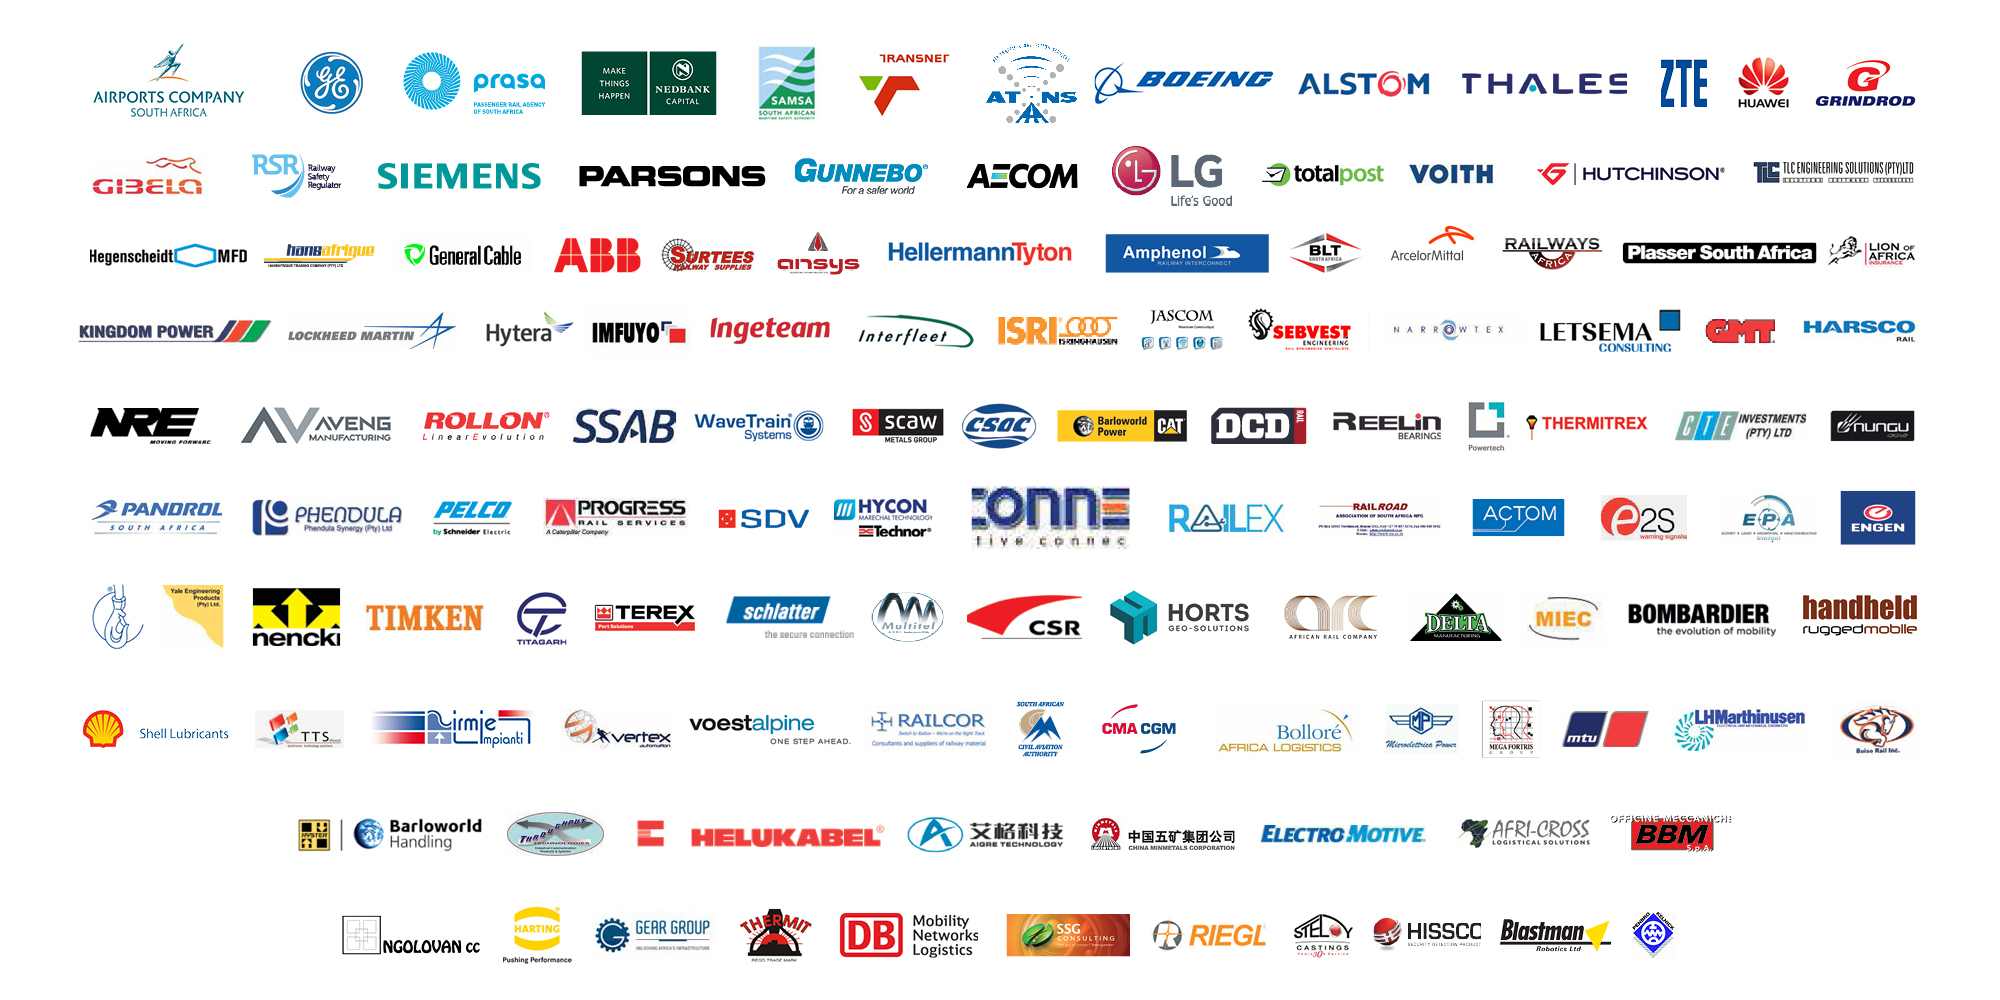 Transport Safety & Security Shwo Africa List of Sponsors and Exhibitors